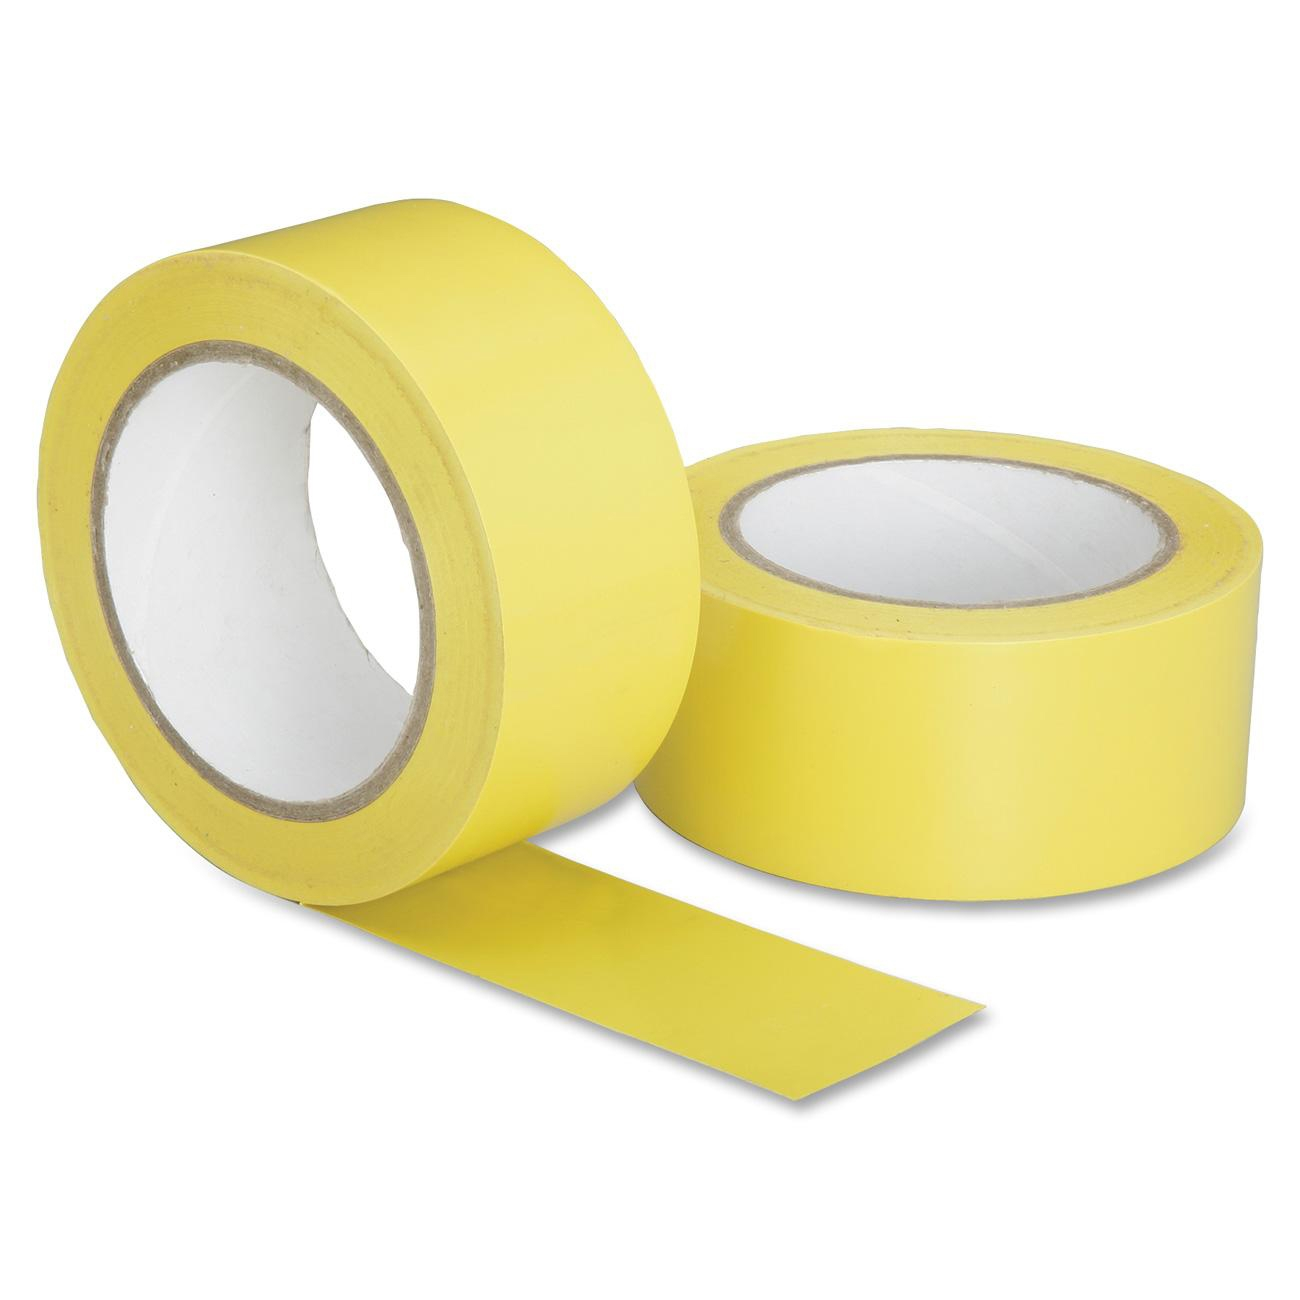 "7510016174257 Marking Tape, Yellow, 2"" X 108 Ft Roll"